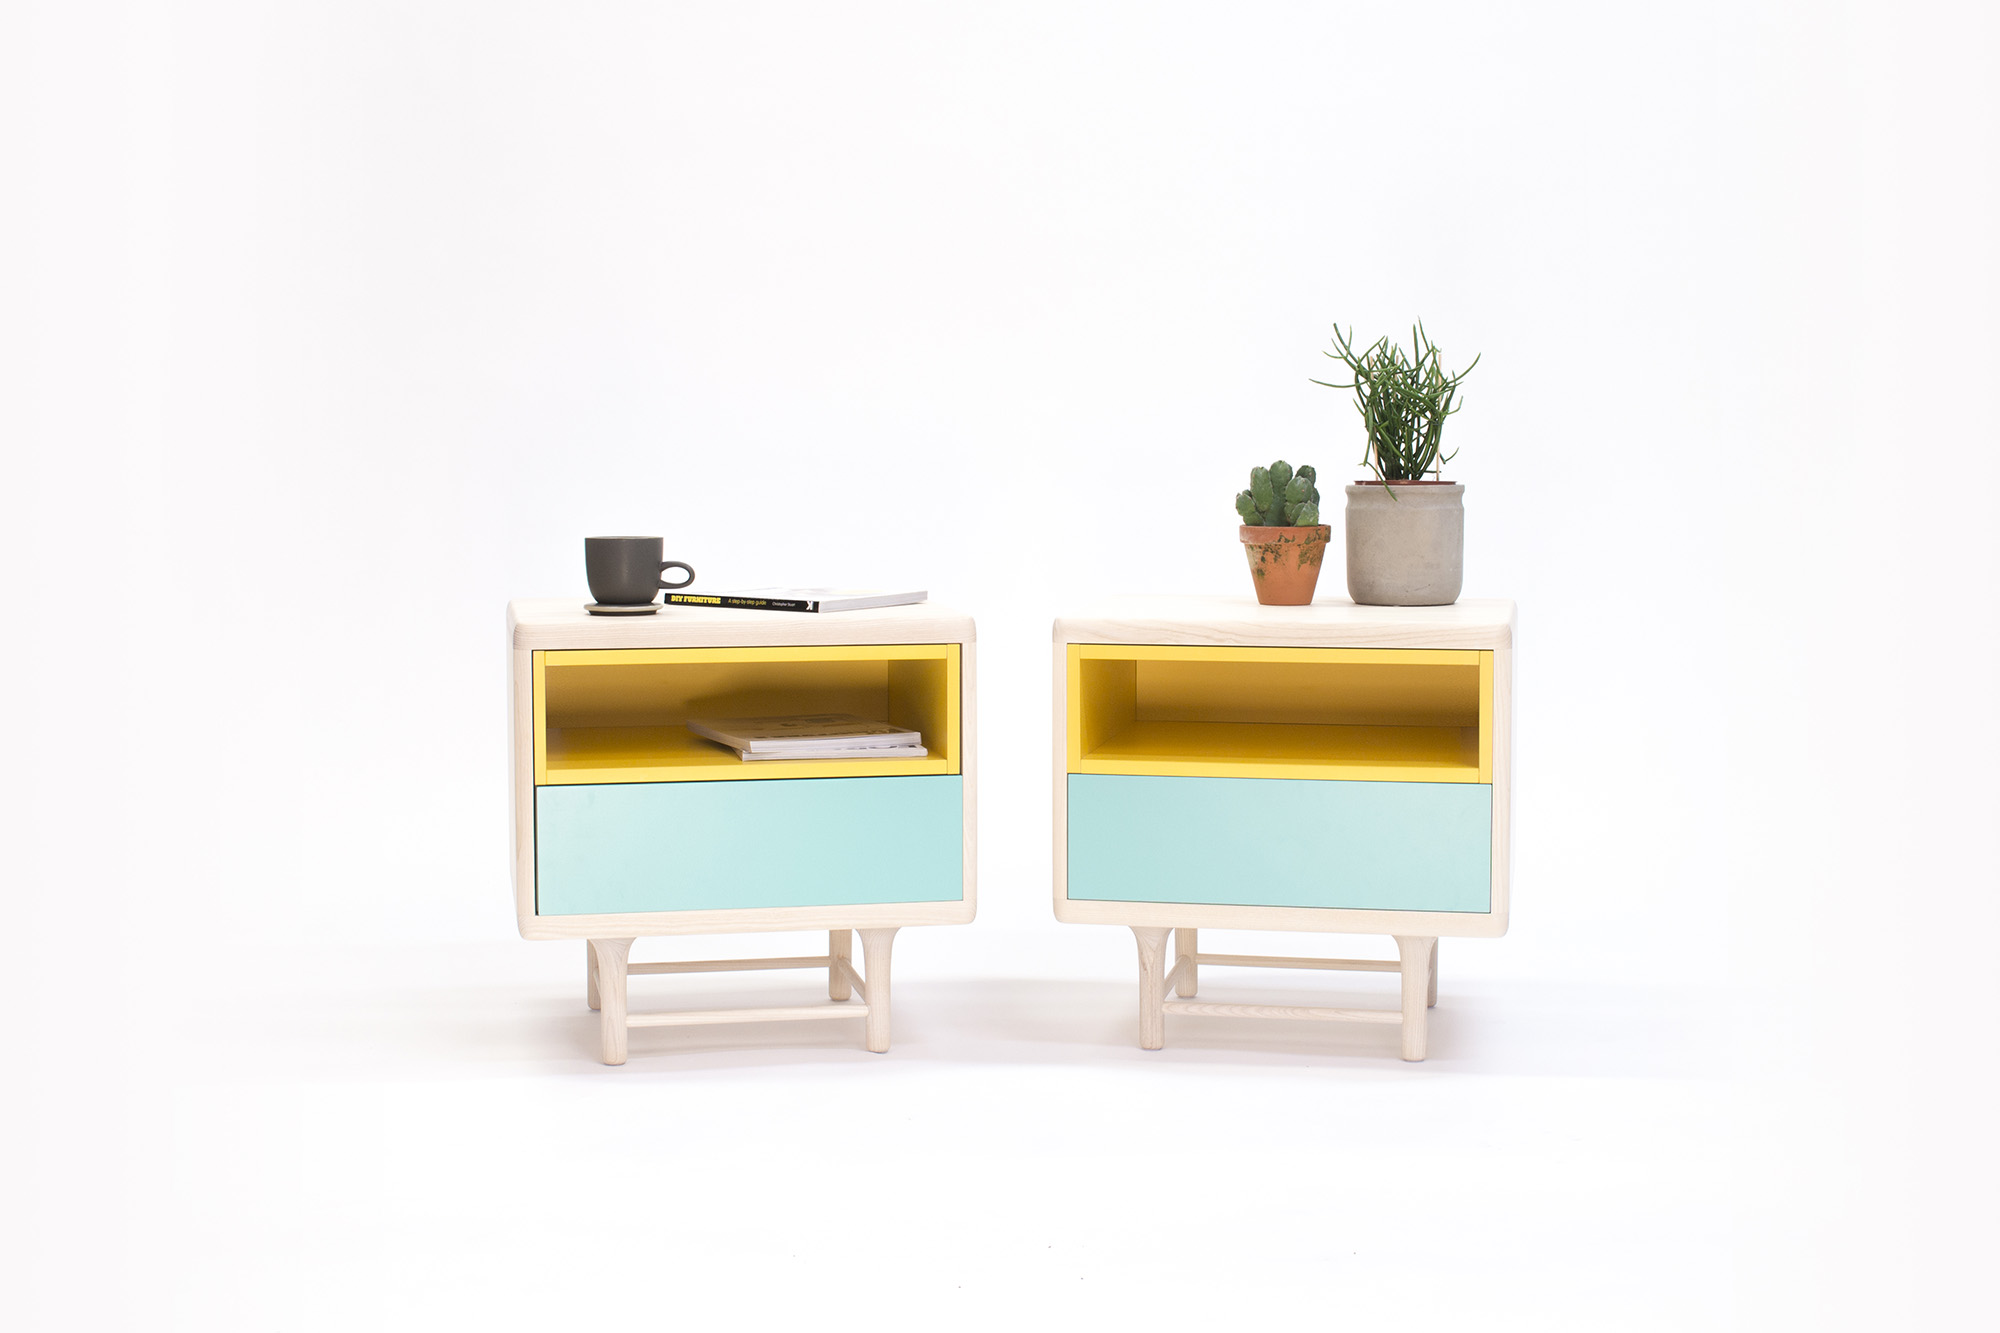 Minimal scandinavian furniture by designer carlos jim nez for Furniture design photo